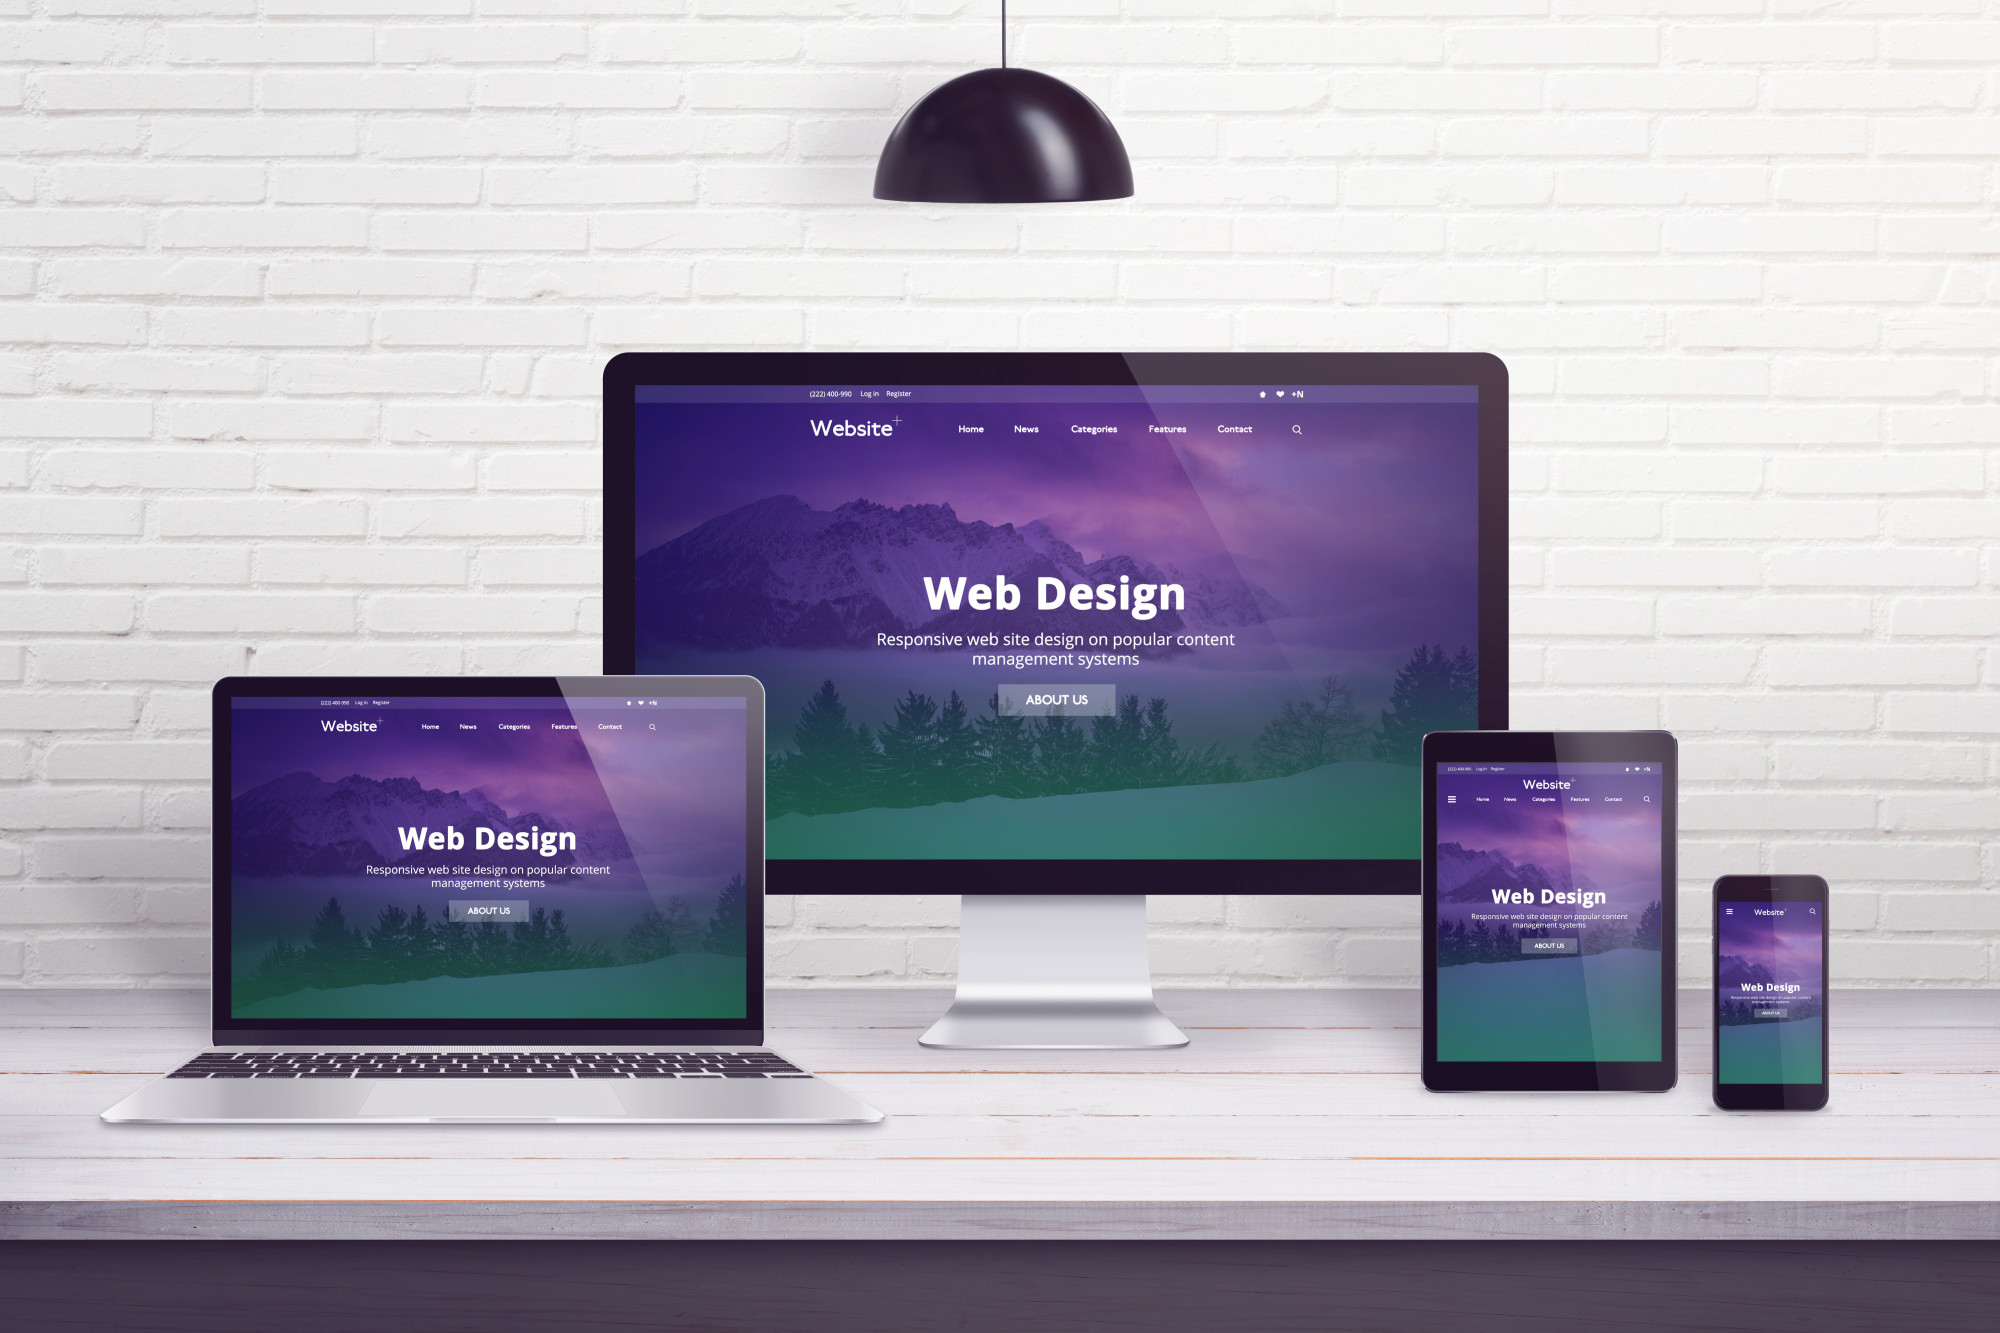 web design site on multiple devices